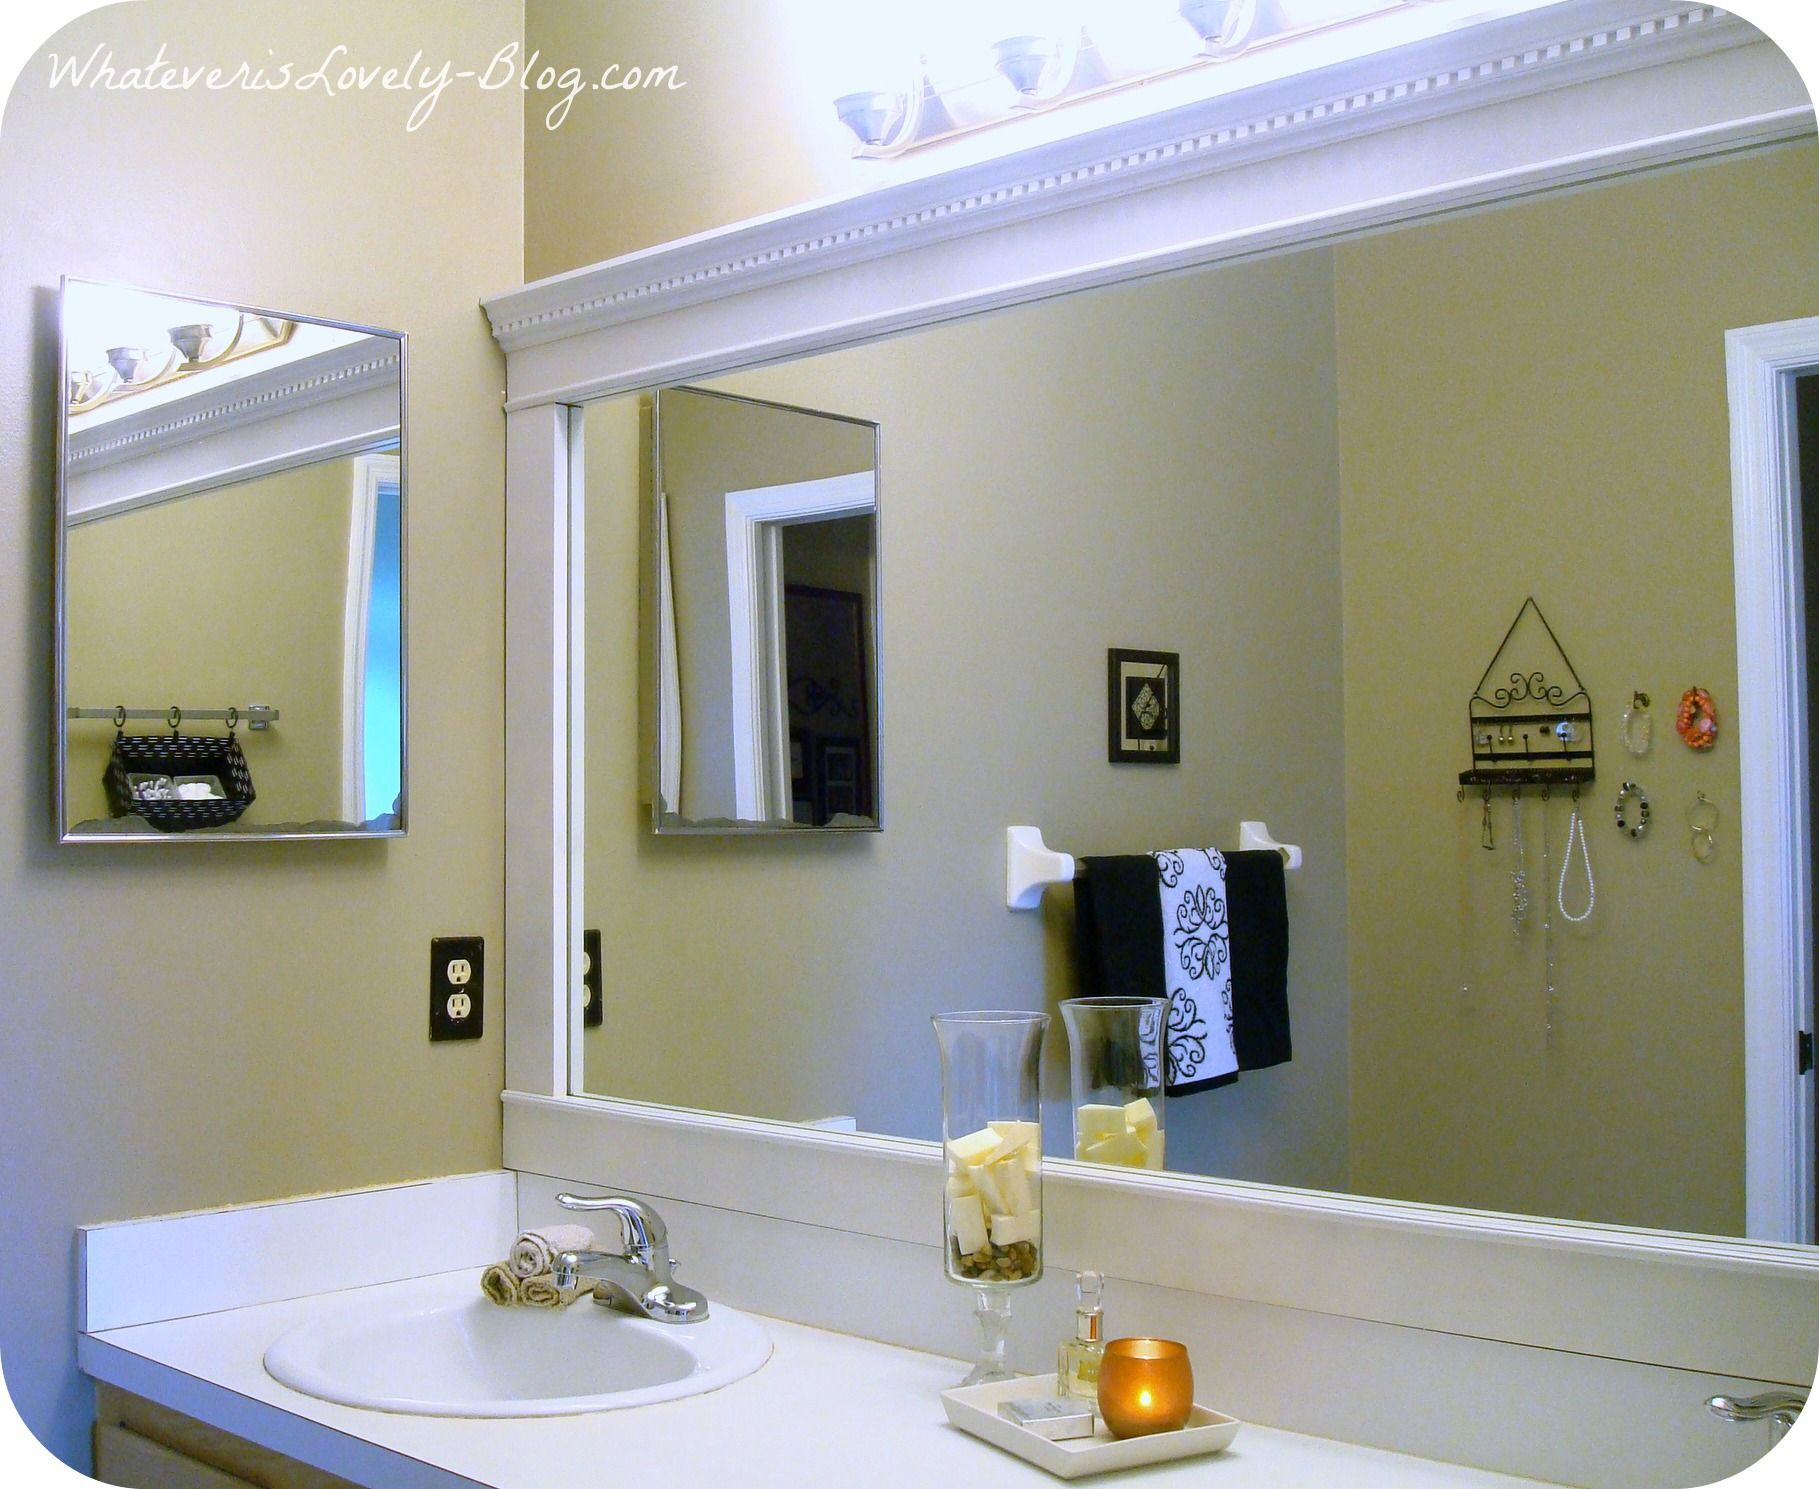 Frame a bathroom mirror with molding - A Reason Why You Shouldn T Demolish Your Old Barn Just Yet Mirror How To Frame Bathroom